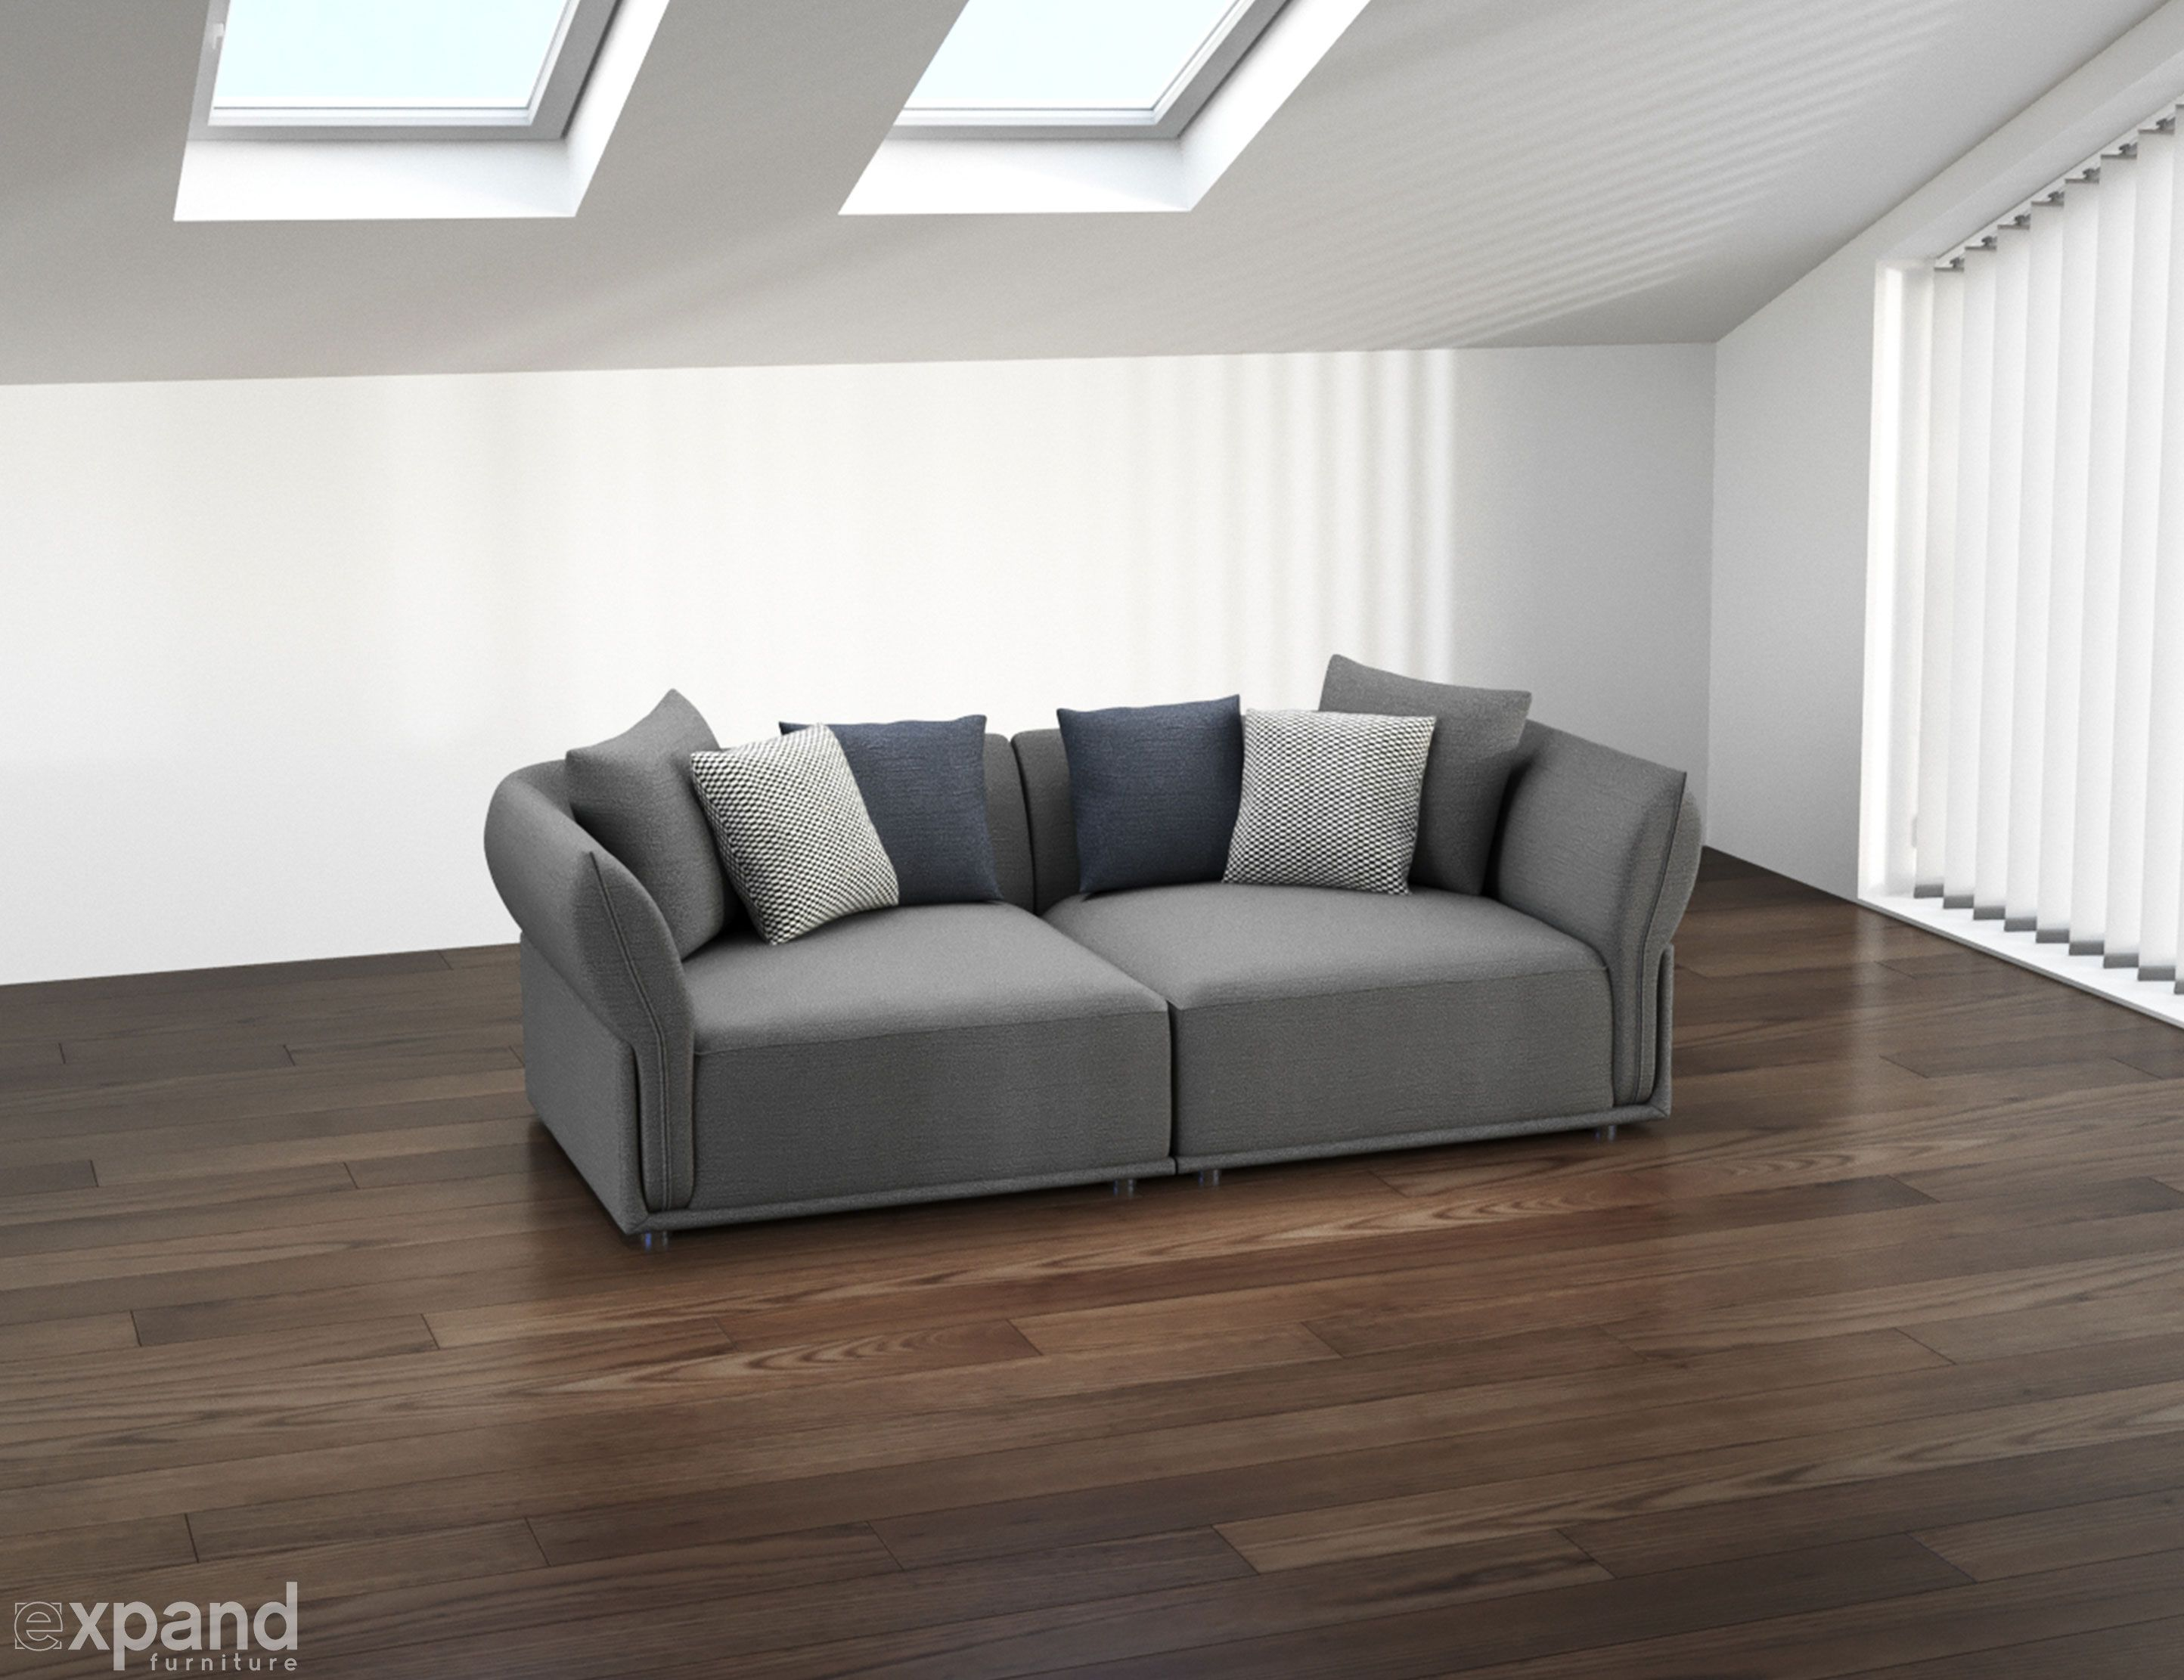 Best Pin By Expand Furniture On Modular Sofas Modern Sofa 400 x 300